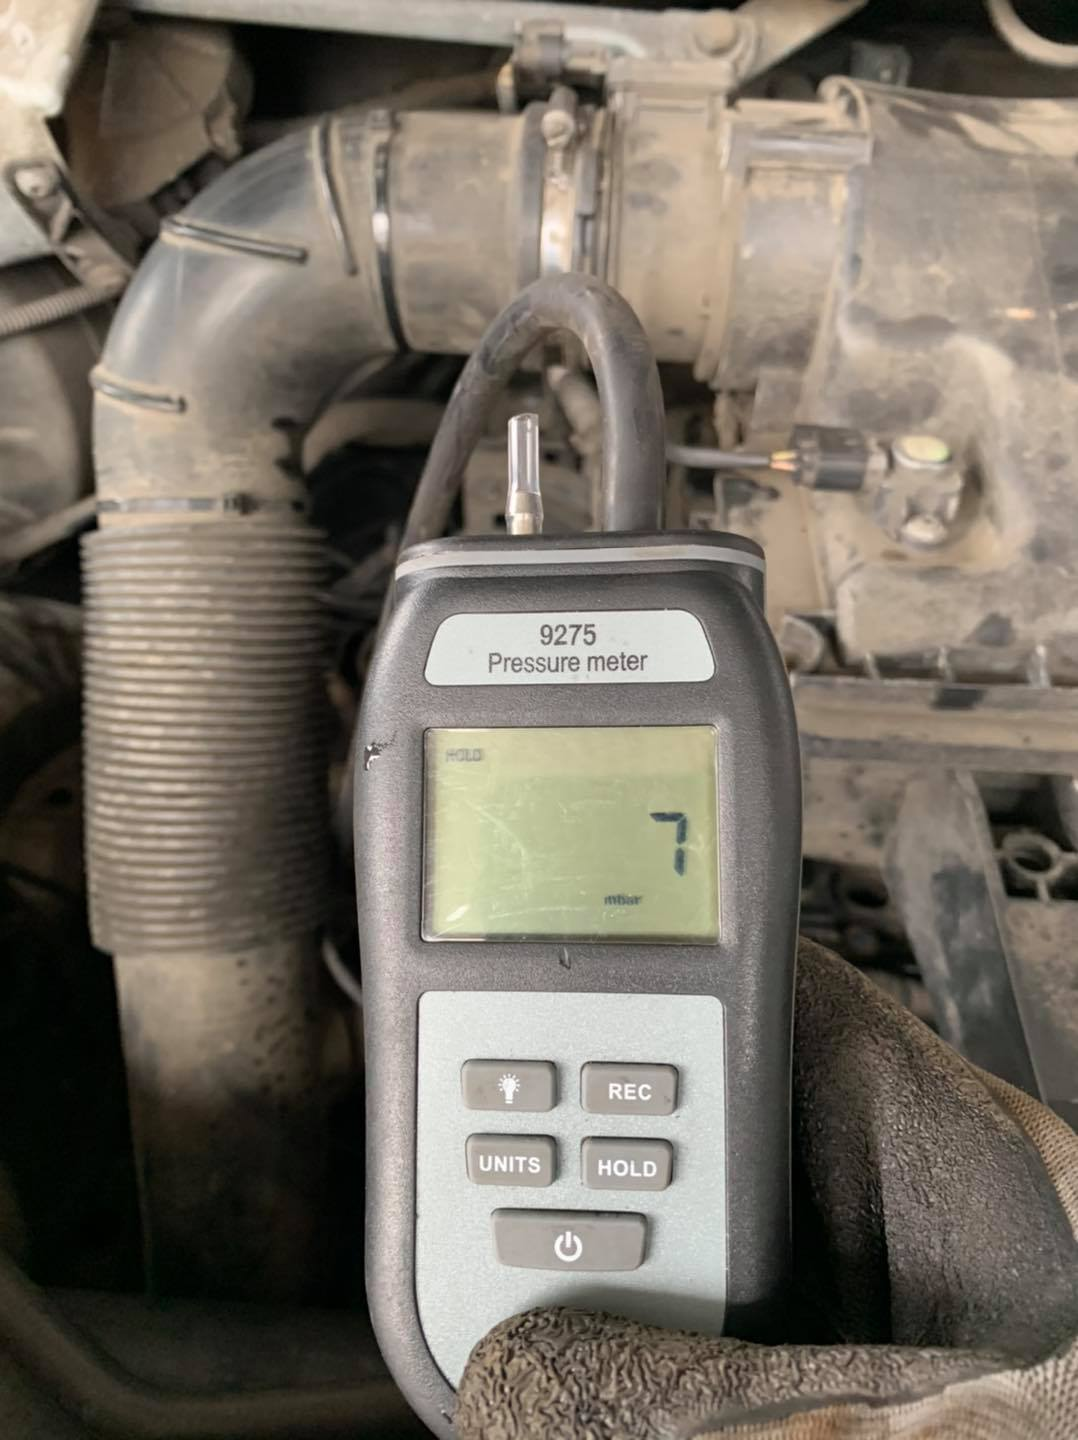 Blocked DPF - Fixed - Showing low pressure after DPF Clean